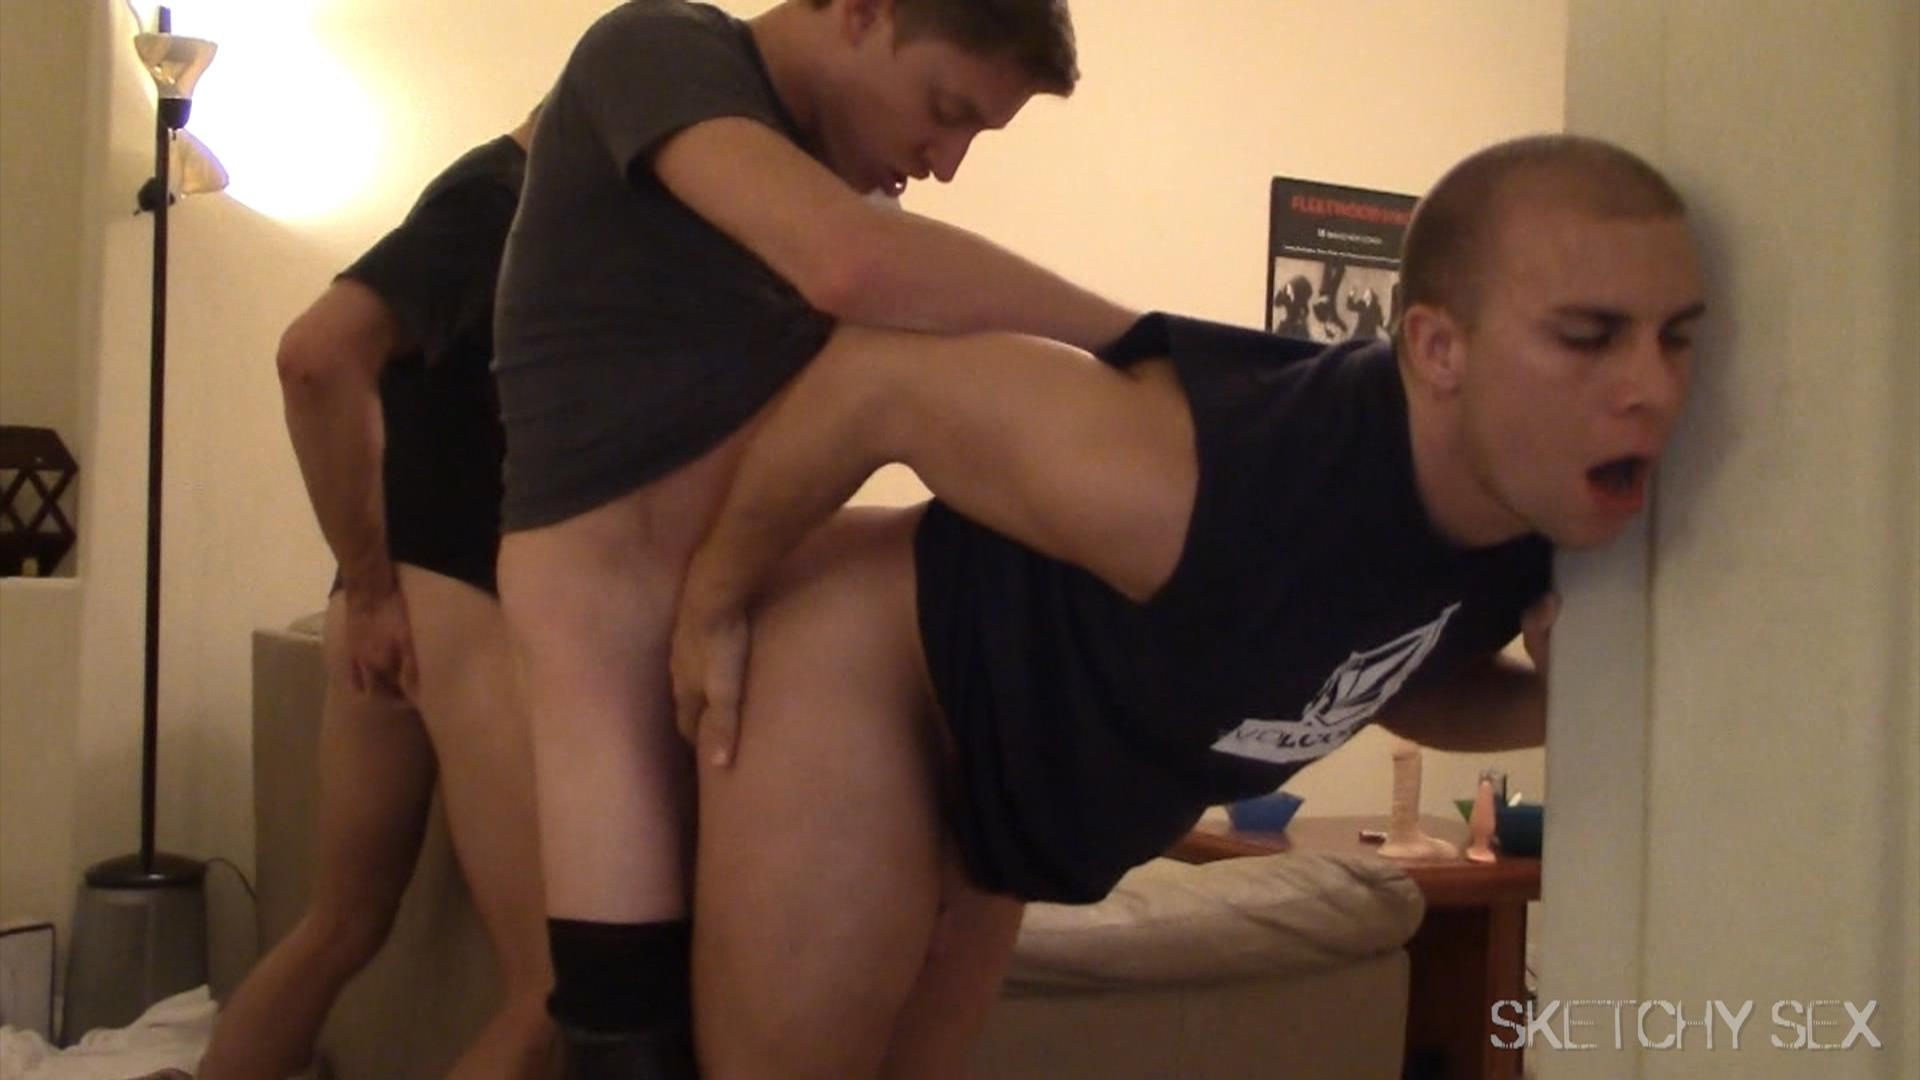 Sketchy-Sex-Anonymous-Bareback-Sex-Party-Big-Dick-Amateur-Gay-Porn-14 Getting Tag Teamed At A Bareback Anonymous Sex Encounter